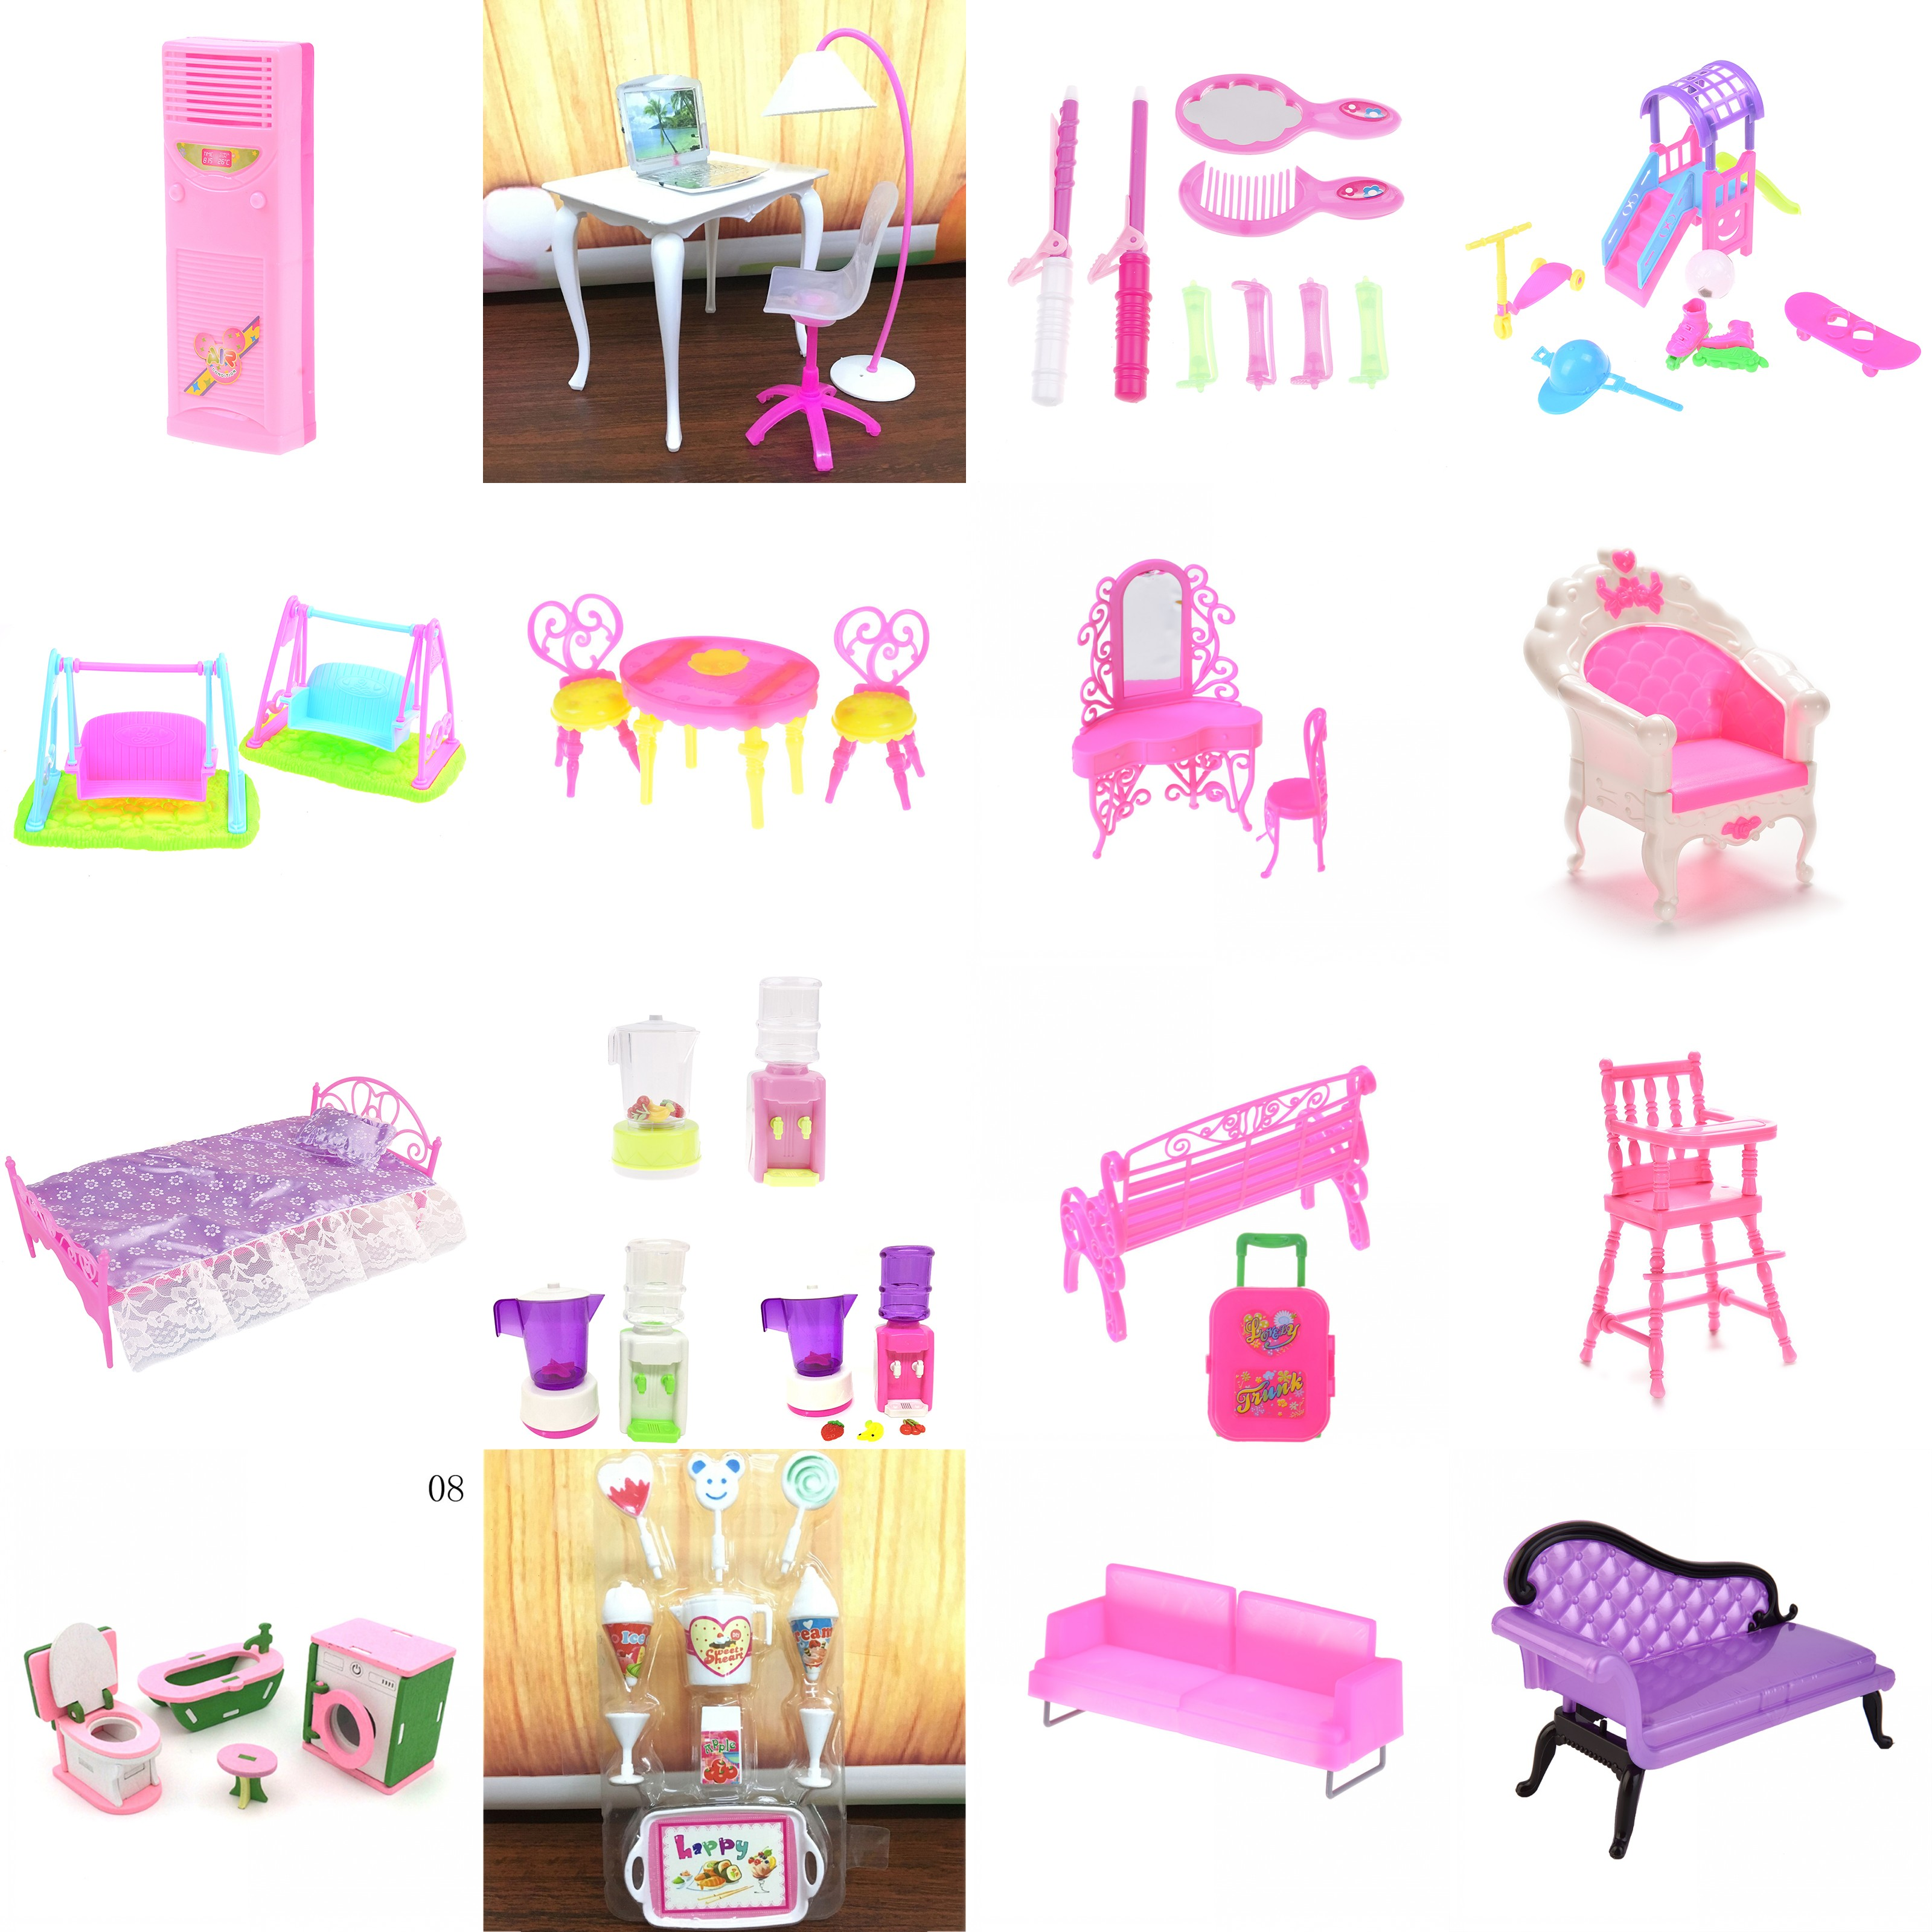 Furniture Toy Miniature House Make-up Lamp Bed Table Chair Toliet Set Tool Doll House Accessories For Dollhouse Pretend Play Toy